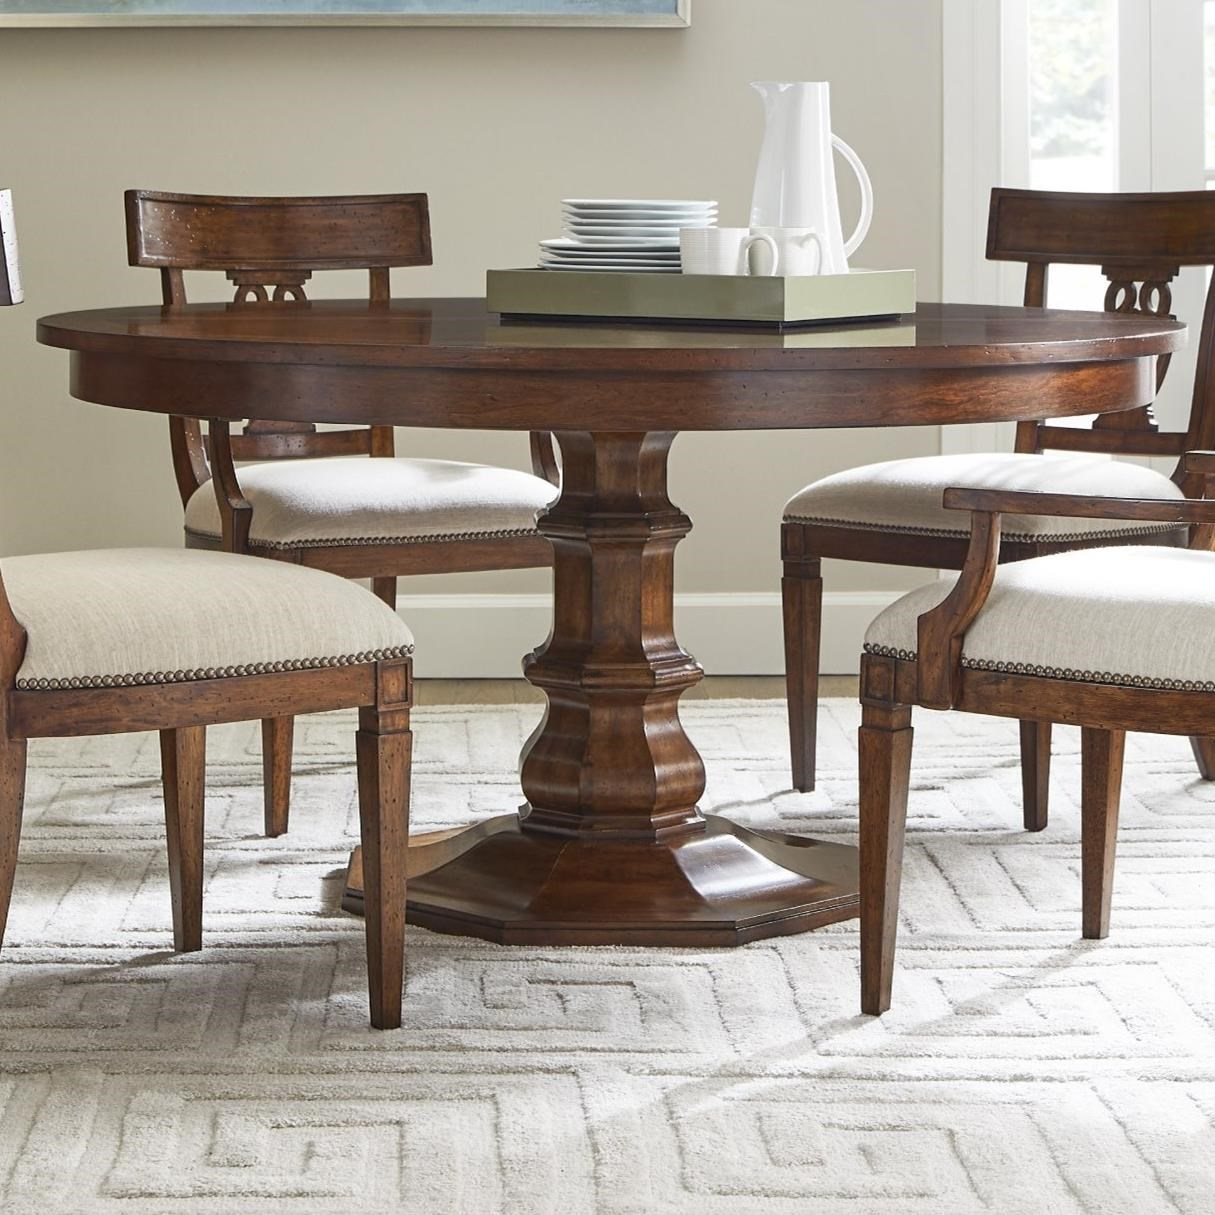 Stanley Furniture Old Town 60 Inch Round Dining Table With Leaf Sprintz Furniture Dining Tables